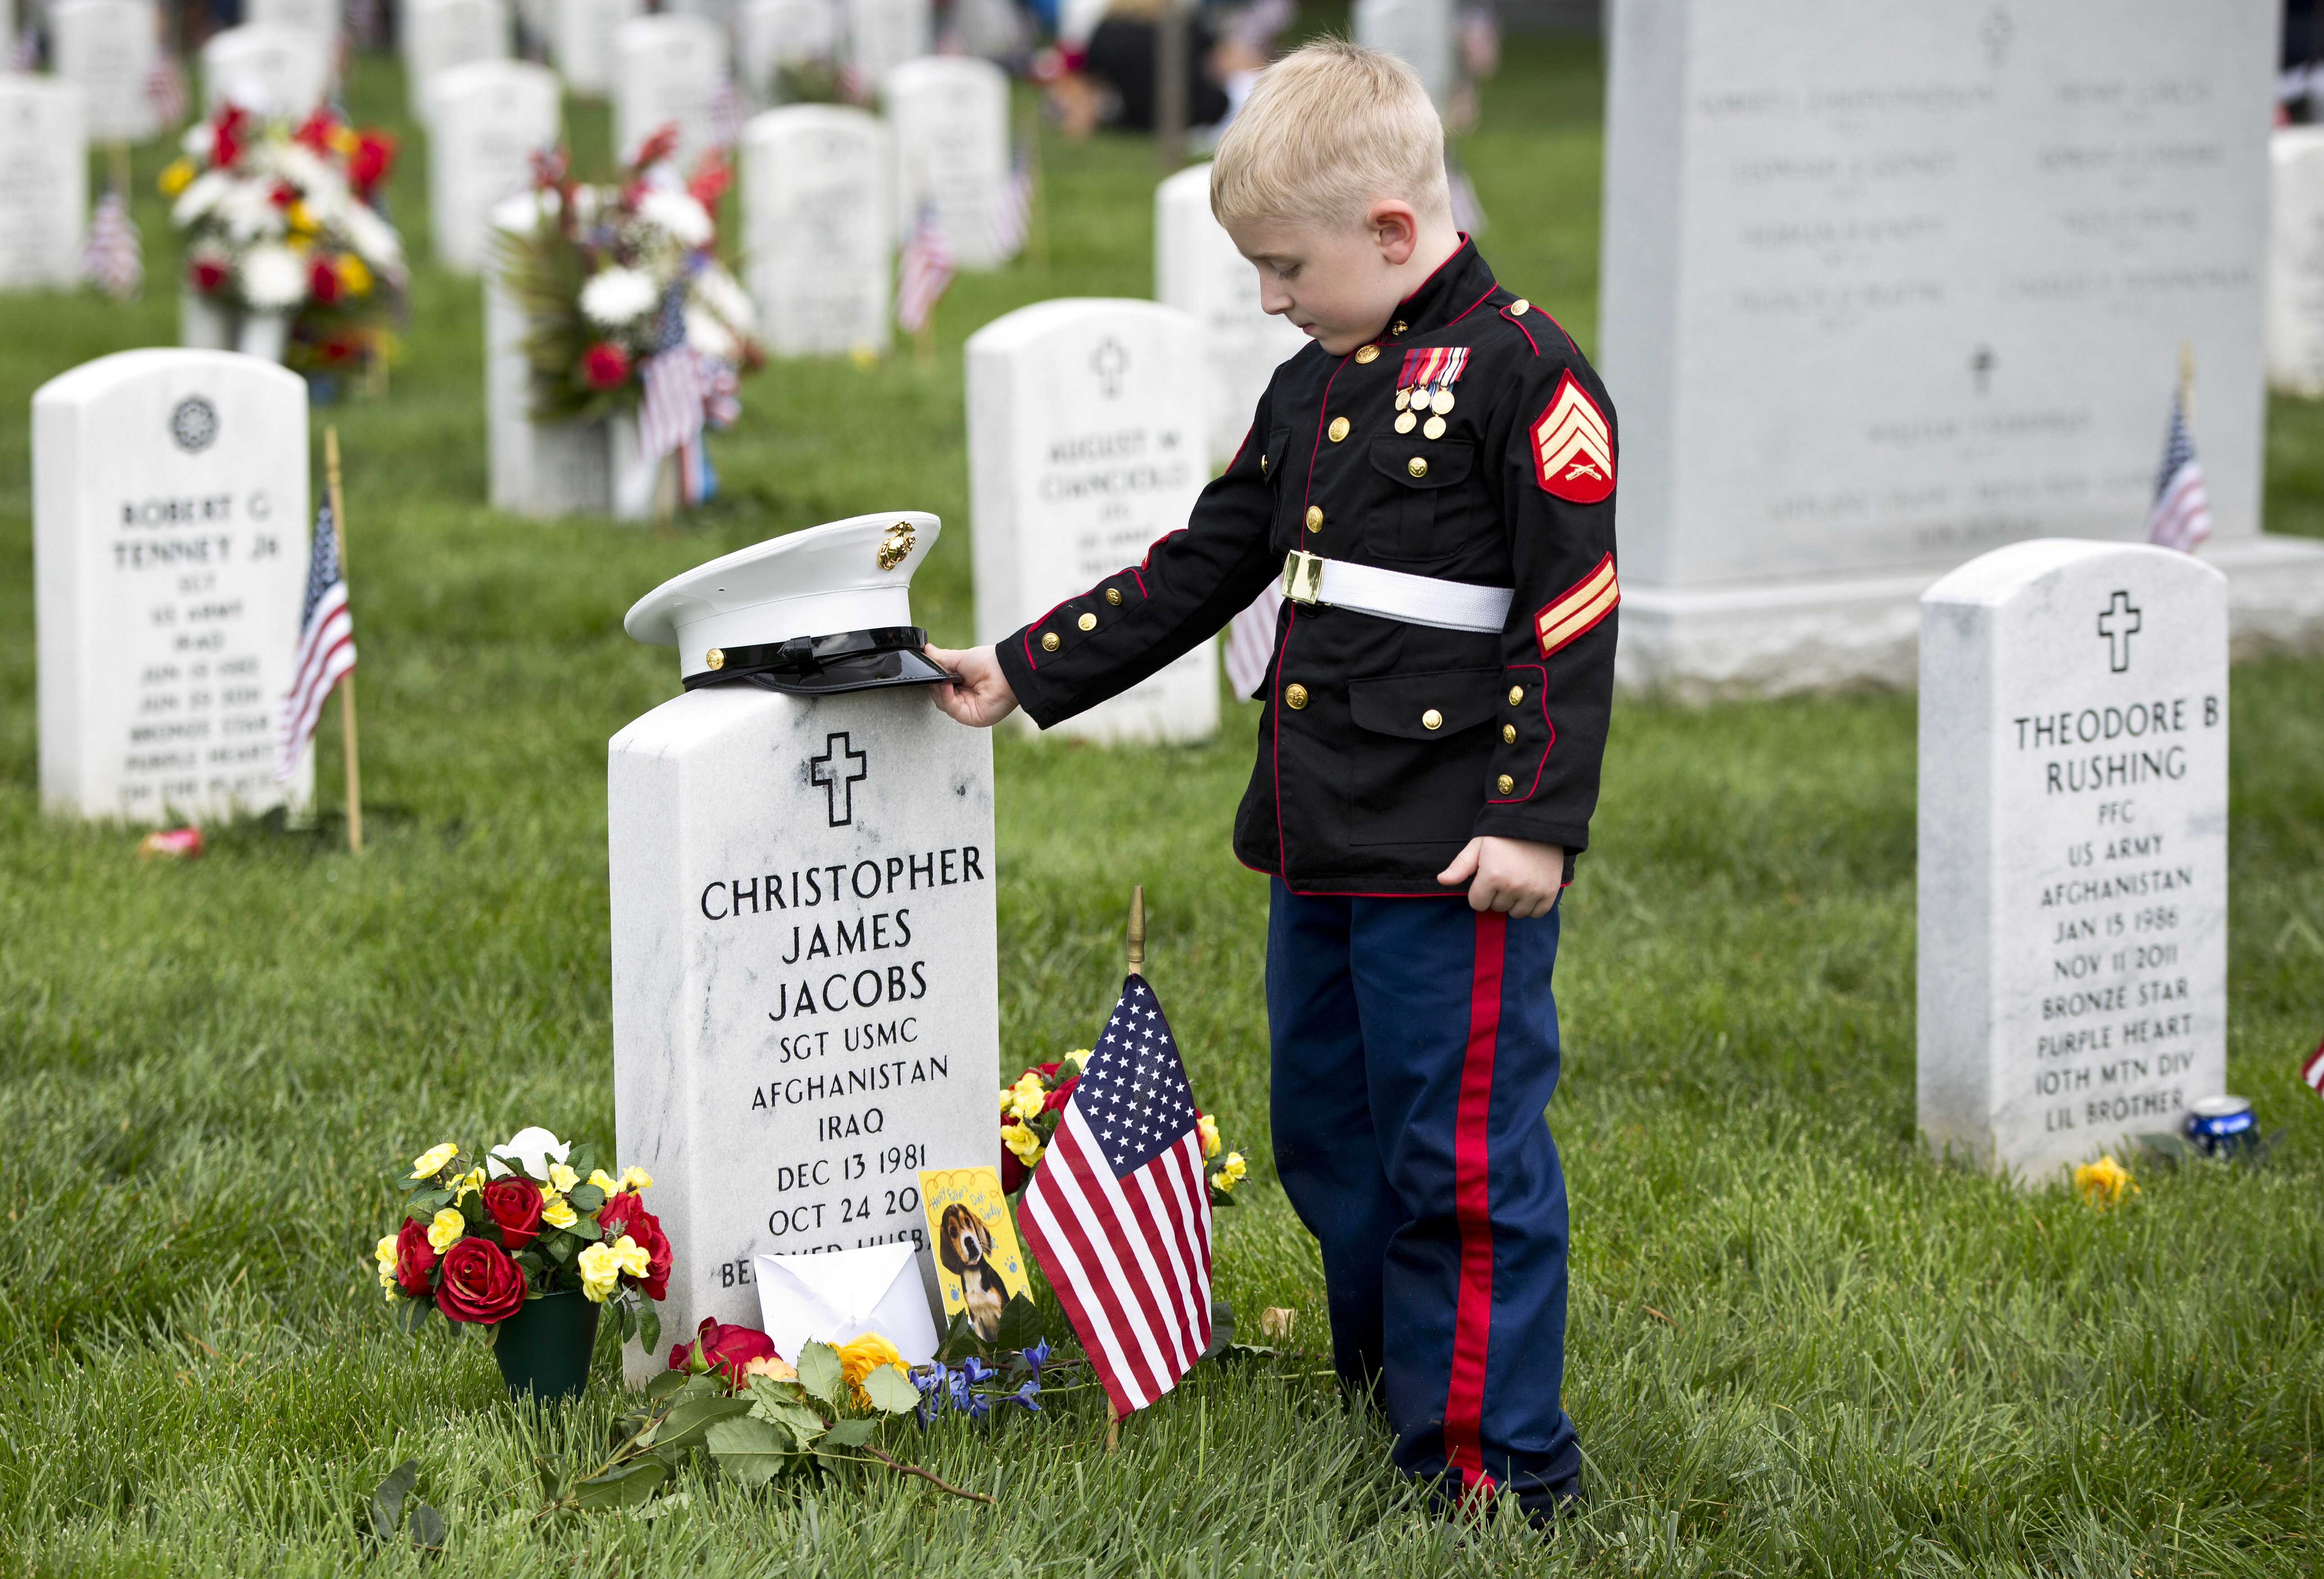 Memorial Day 2016: America honors the fallen - Pictures ... on the saddest acre section 60, arlington national cemetery section 21, arlington national cemetery section 16, arlington national cemetery section 59, arlington national cemetery section 2, arlington national cemetery section 66, arlington national cemetery section 64, arlington national cemetery section 1,